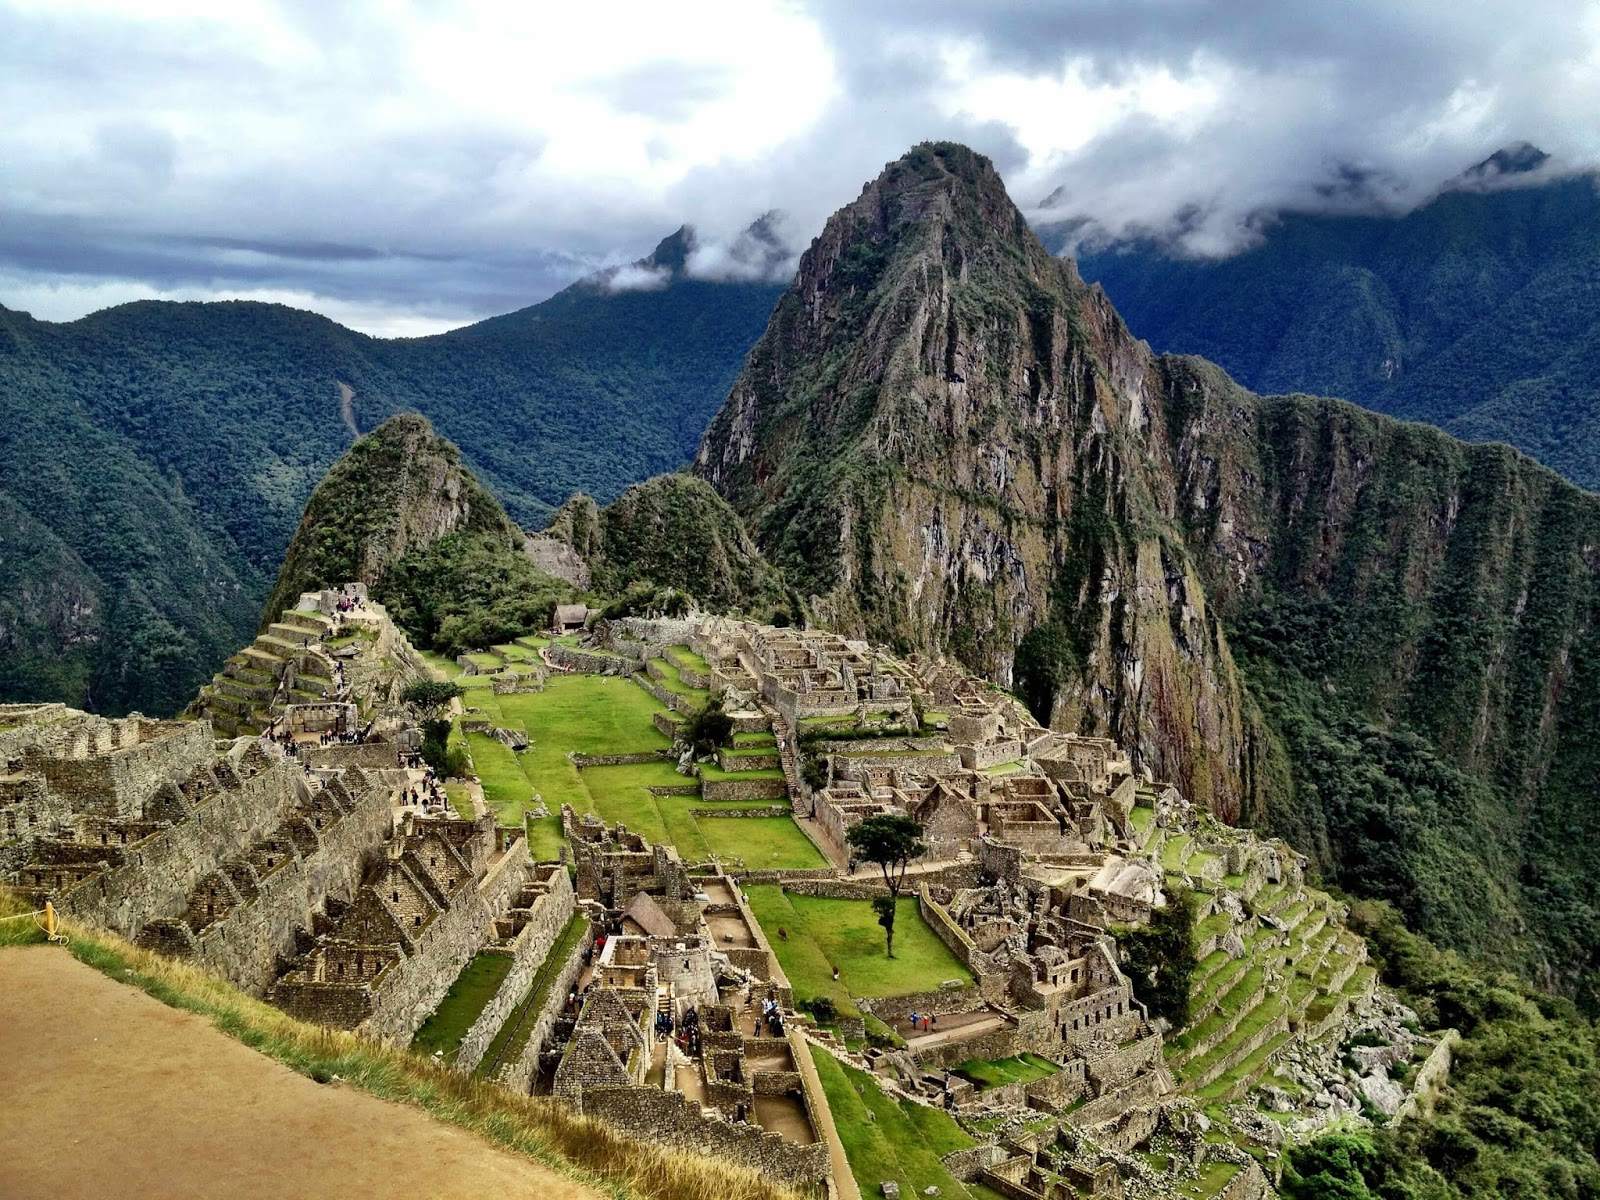 The glorious view of Machu Picchu, at the end of the Inca Trail